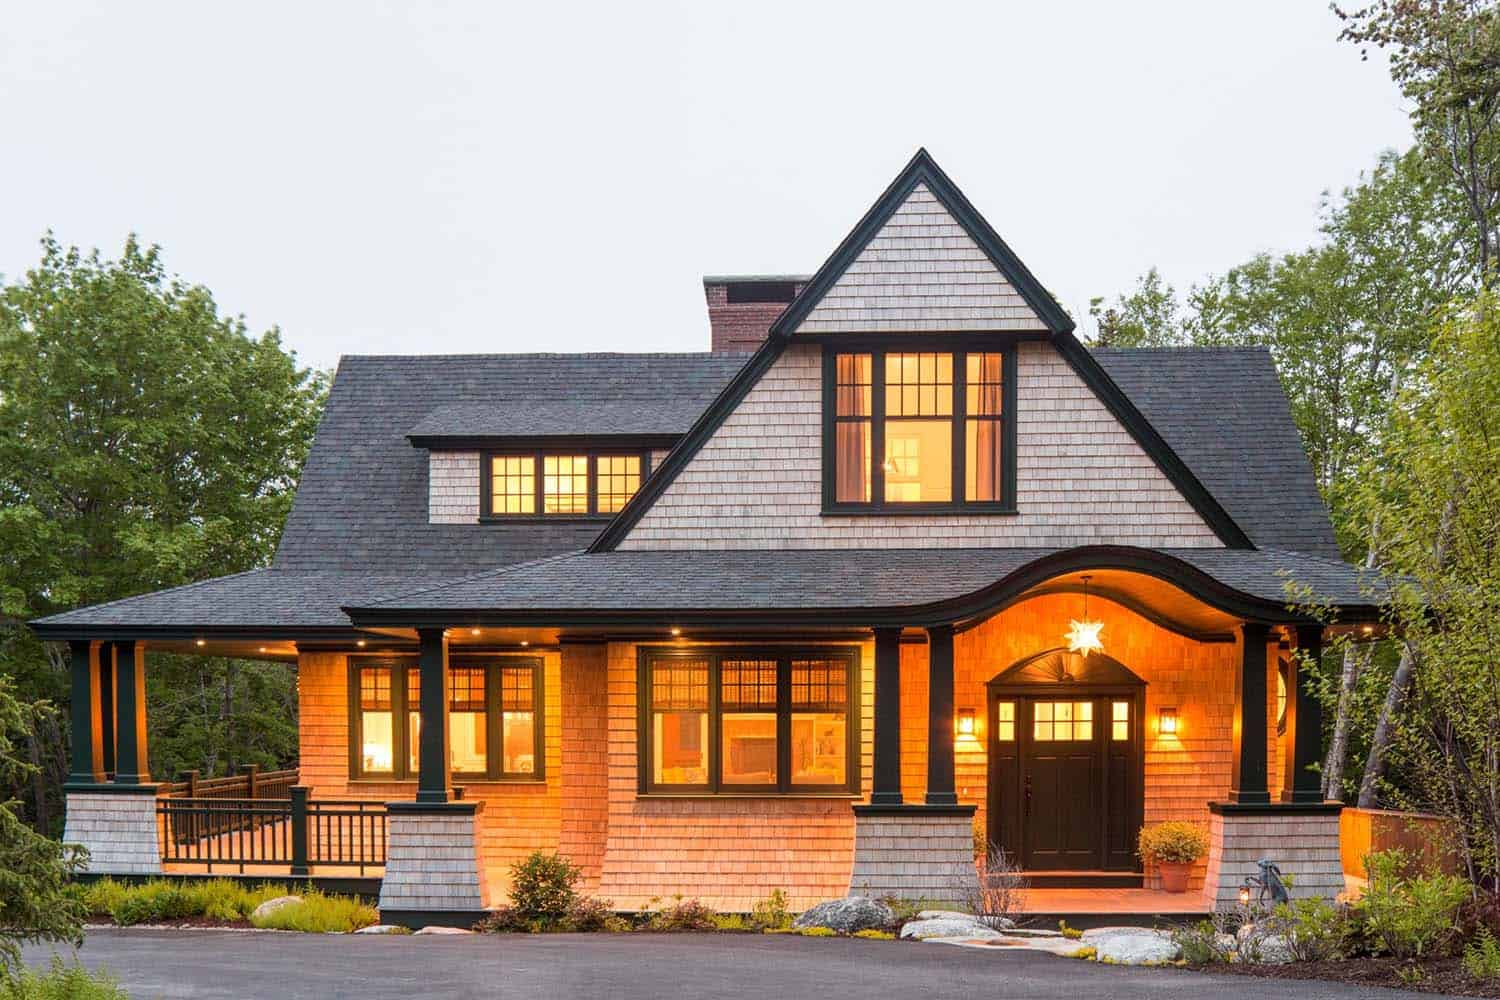 Shingle Style Cottage In The Seaside Village Of Seal